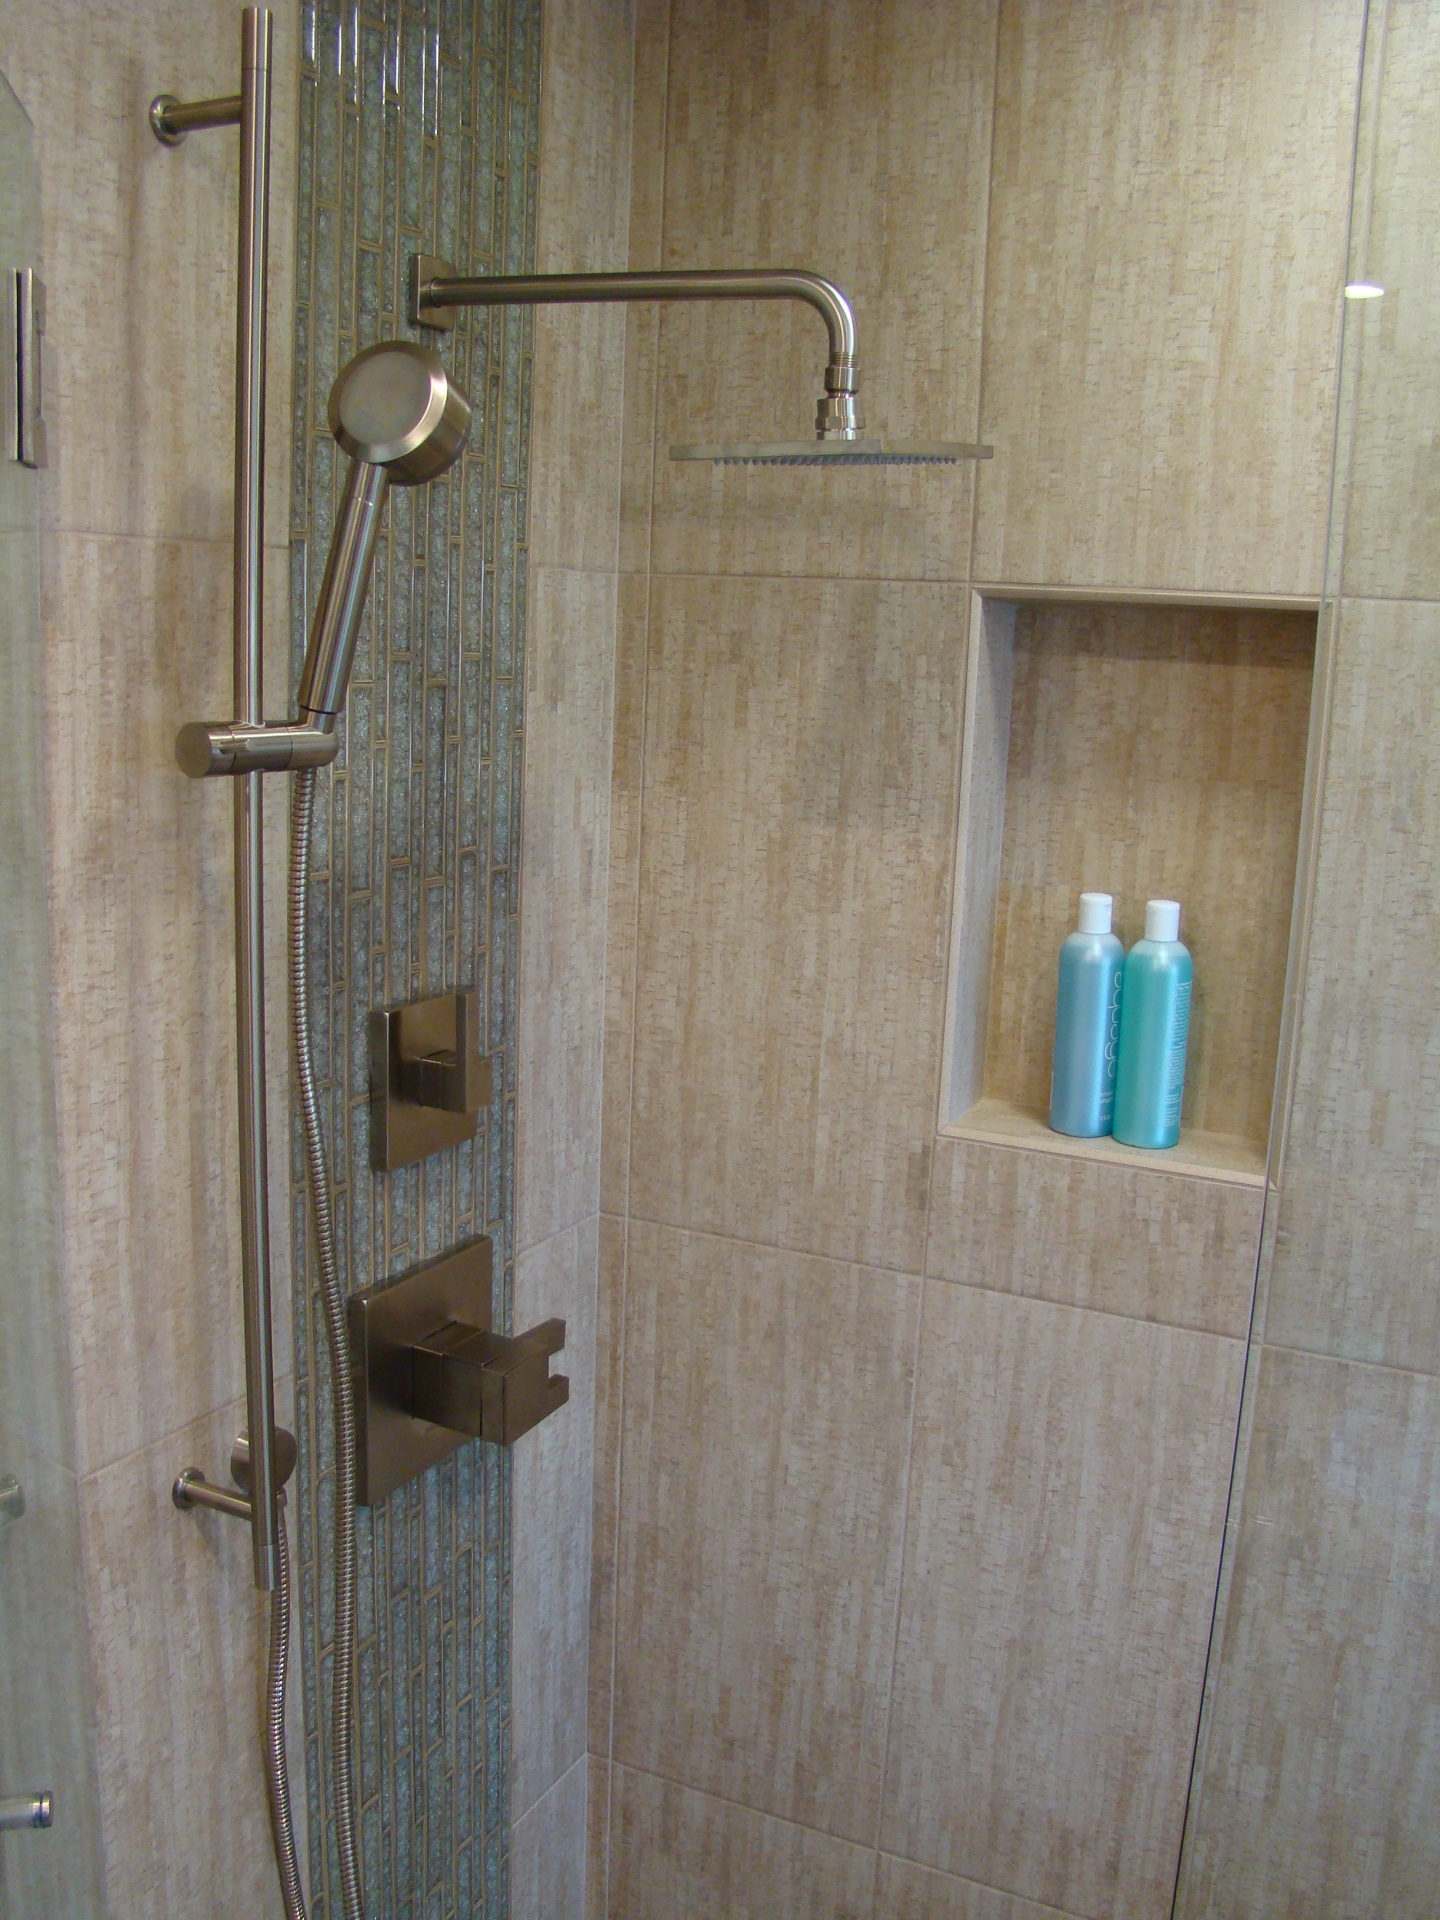 Fiorito Interior Design, interior design, remodel, bathroom, tropical, shower, crackle glass mosaic, modern shower head